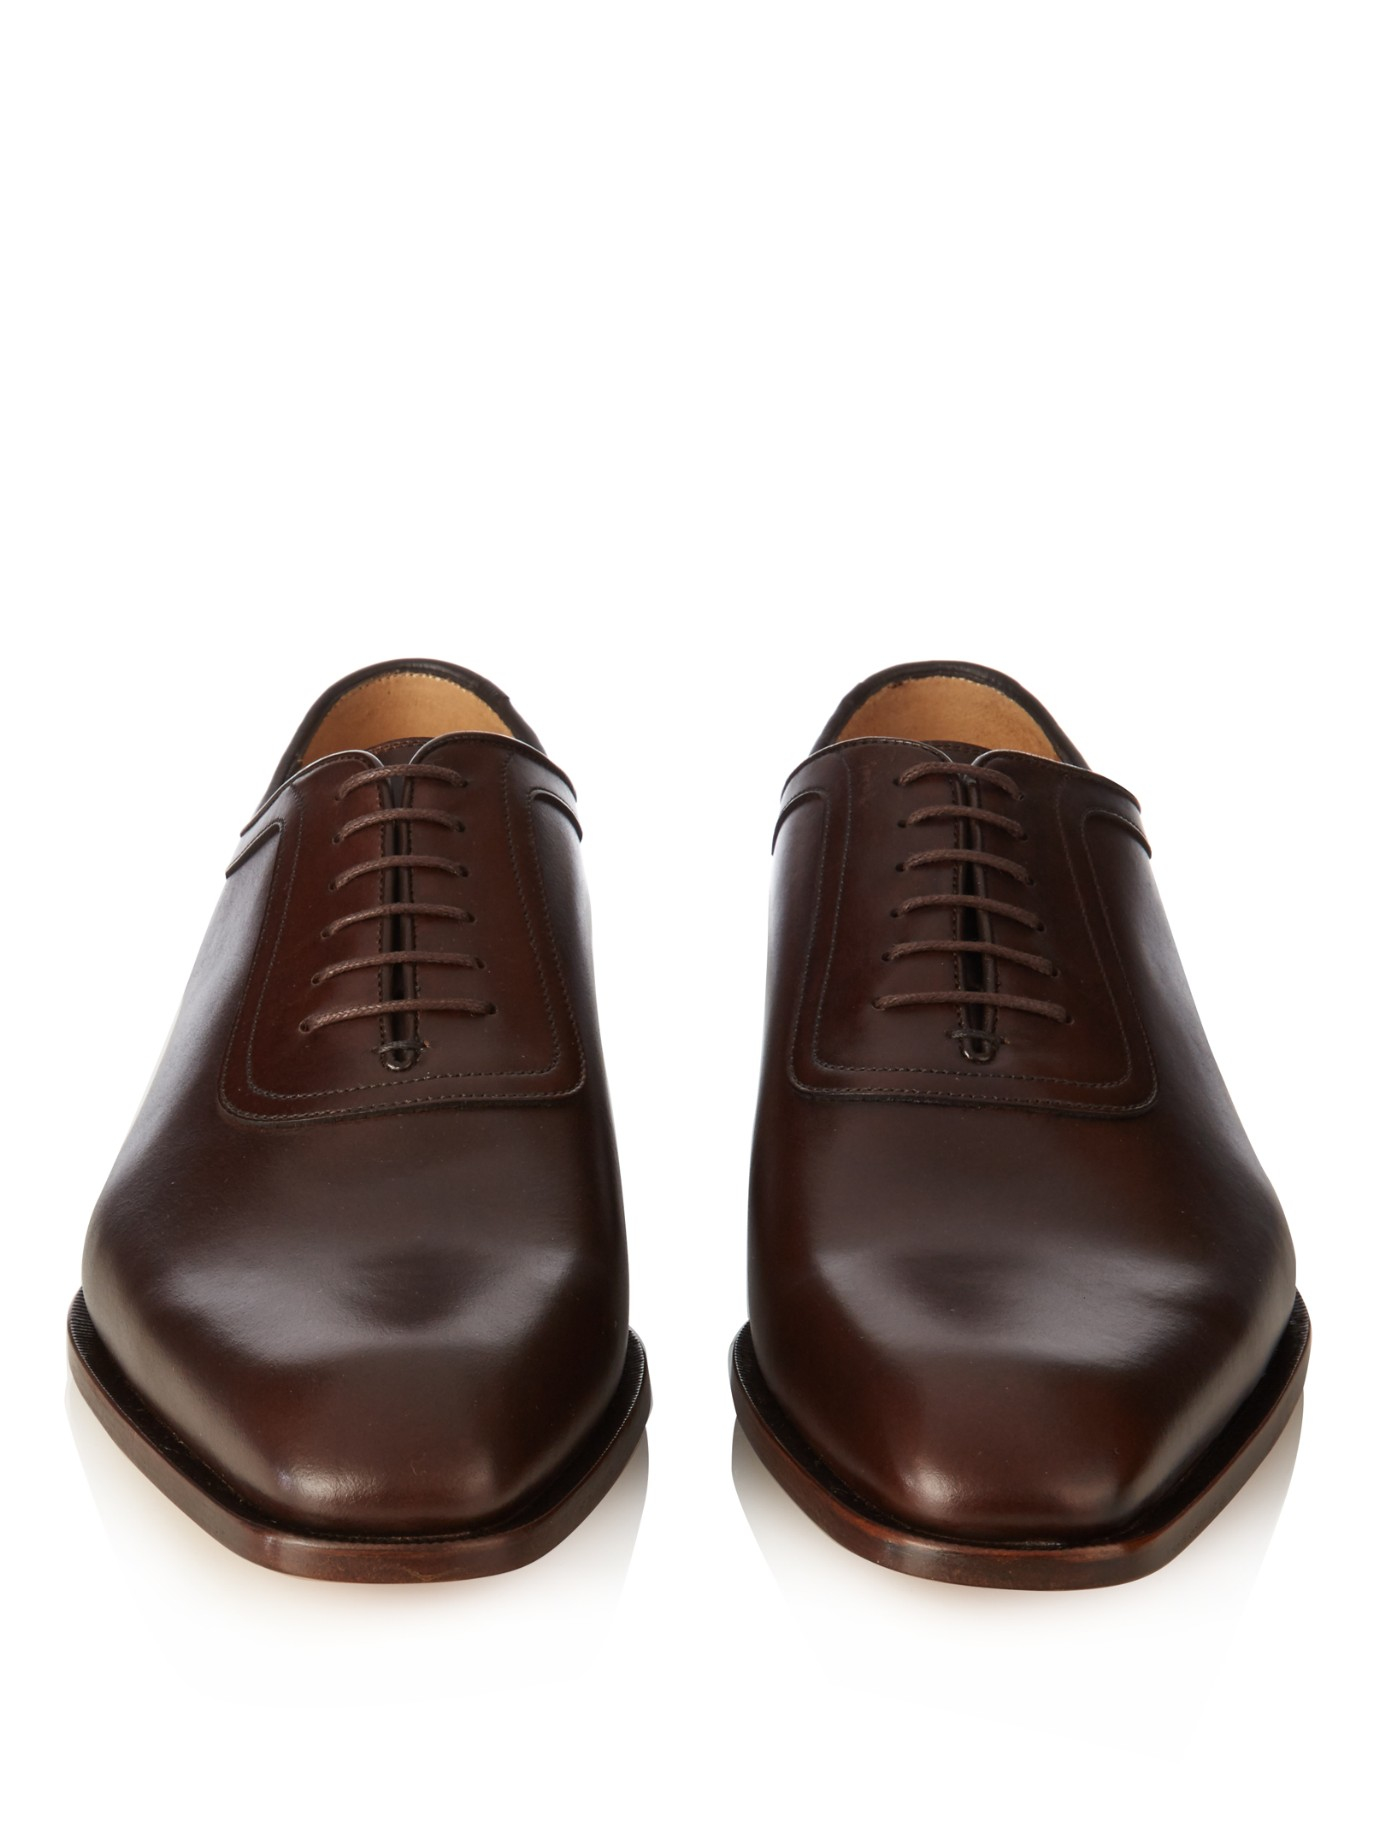 gucci dress shoes brown. gallery gucci dress shoes brown i